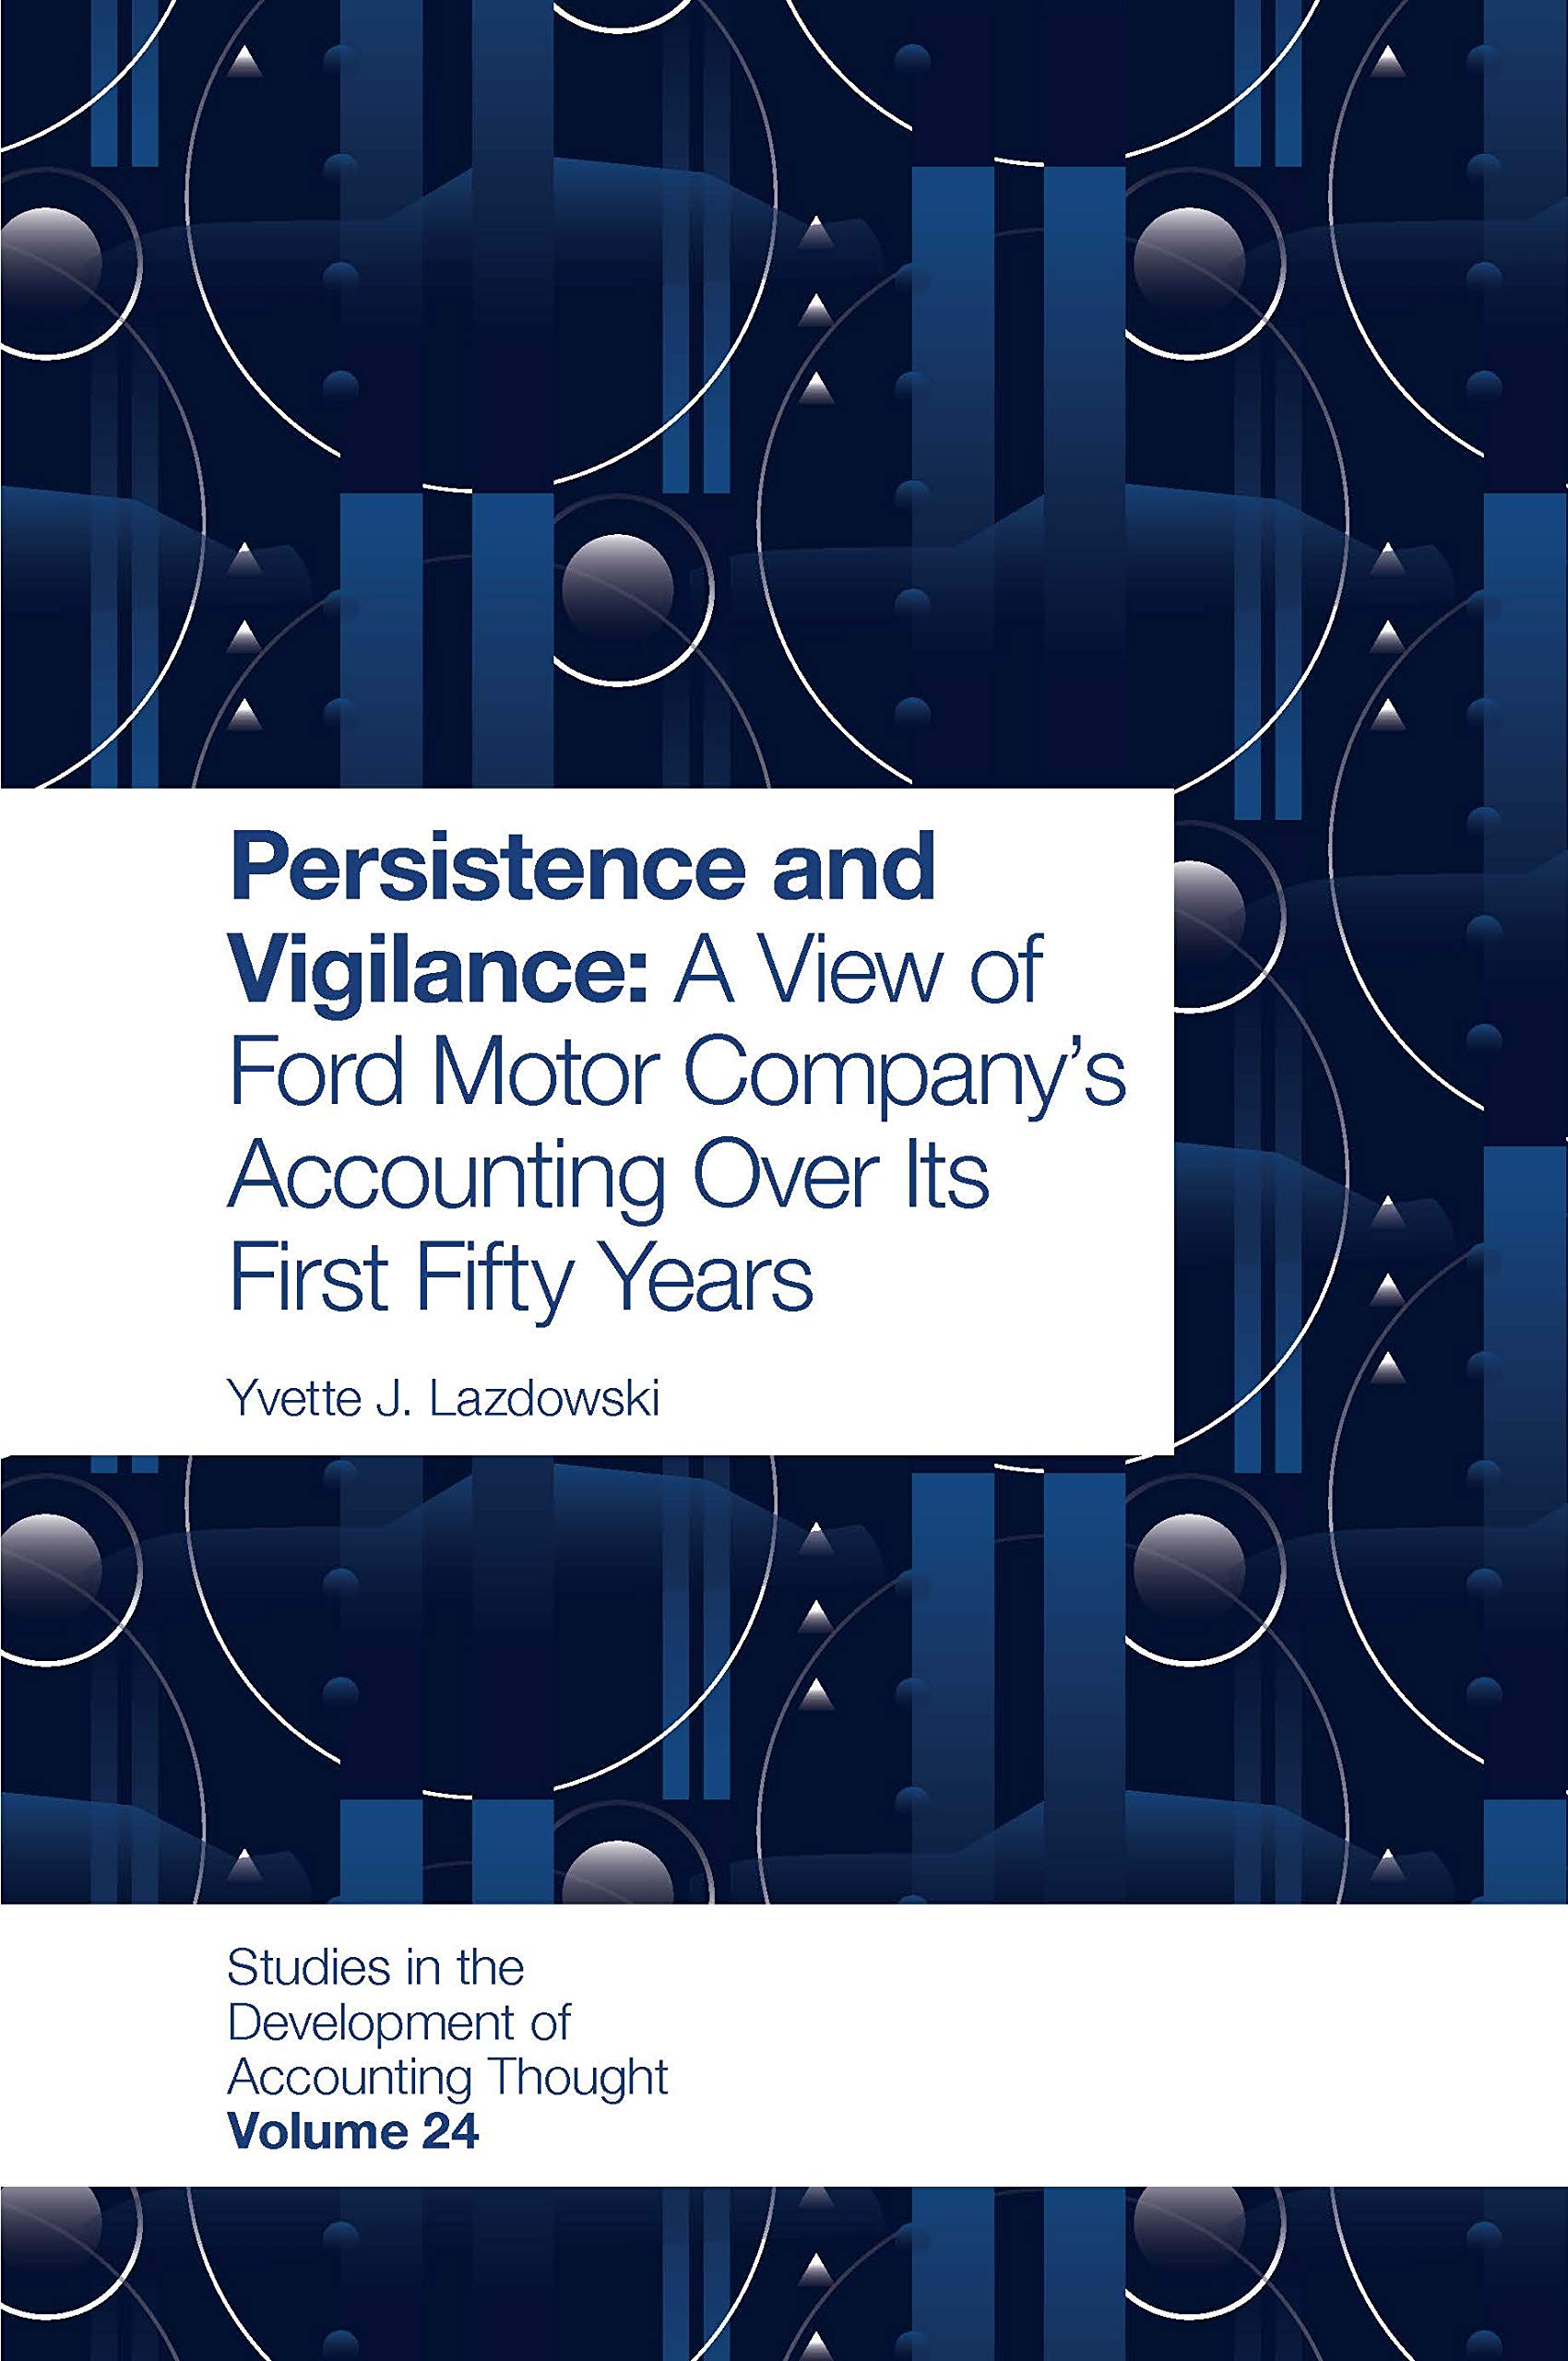 Persistence and Vigilance: A View of Ford Motor Company's Accounting Over Its First Fifty Years (Studies in the Development of Accounting Thought Book 24)